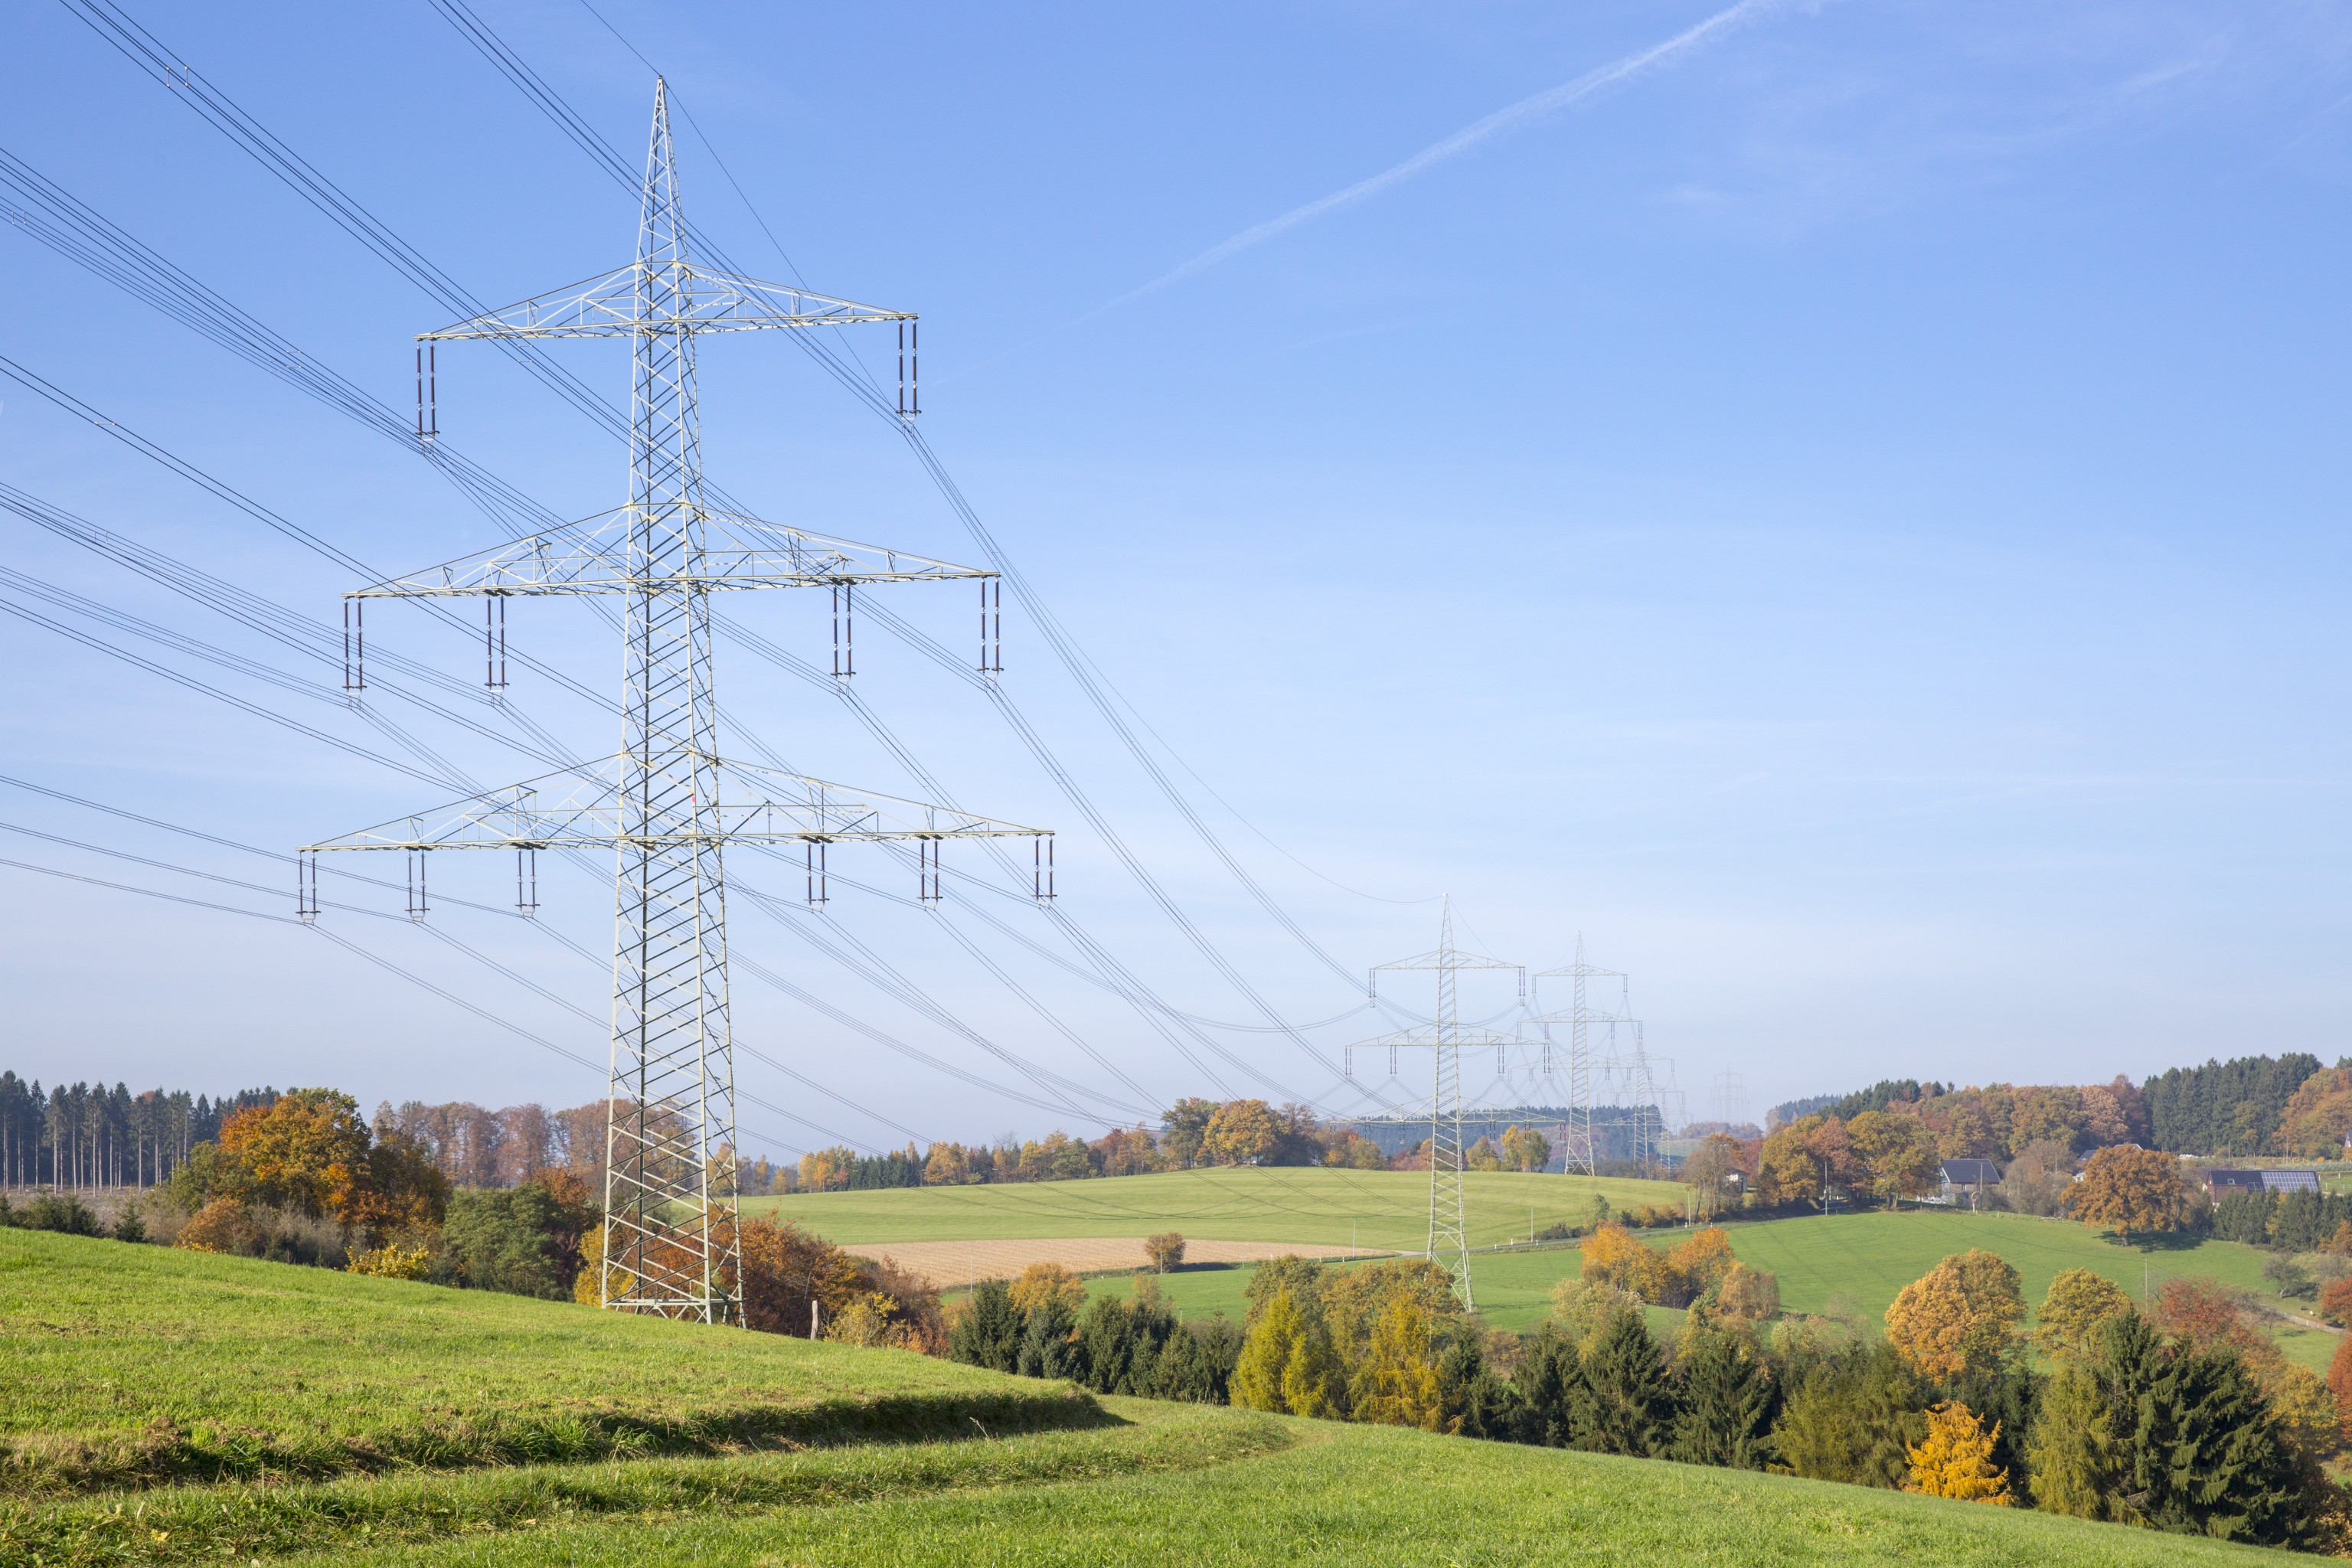 Preview 2021: 'We need a new electricity market design'